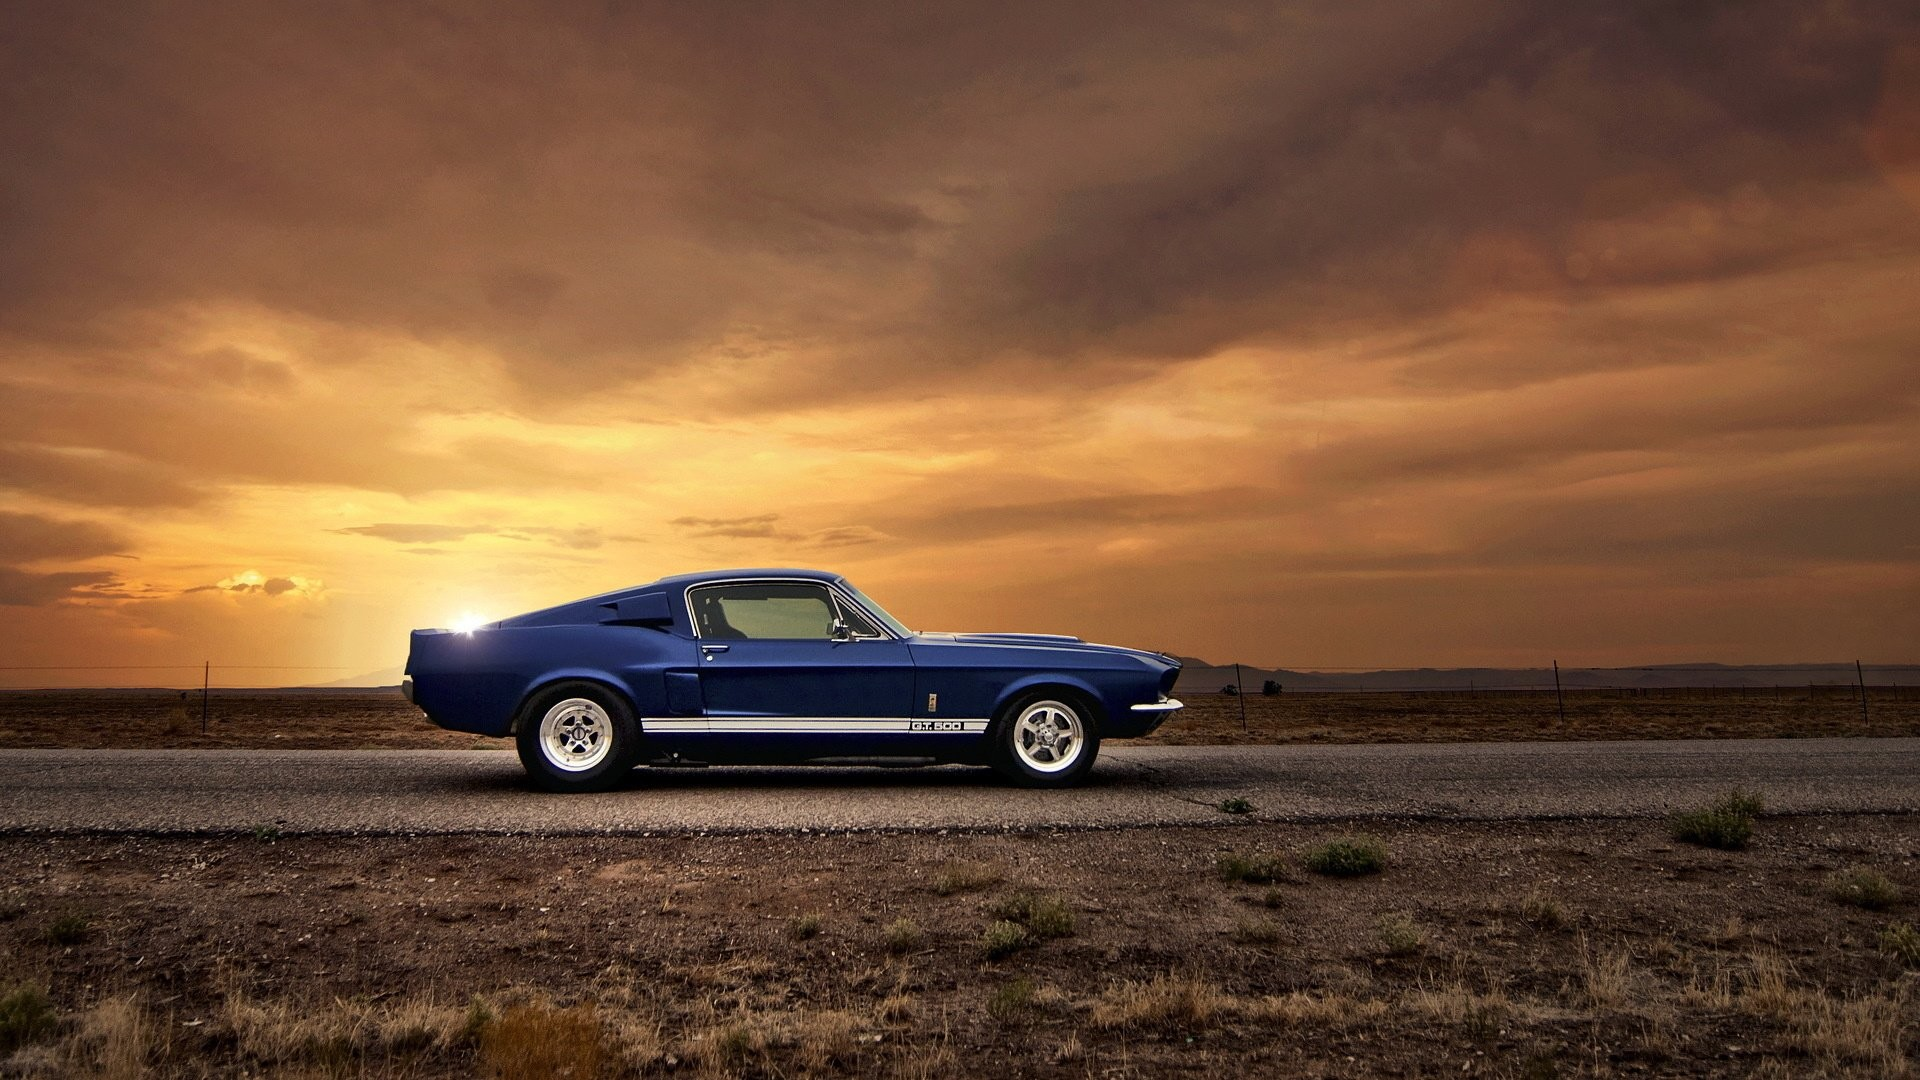 Old Ford Mustang Hd Wallpaper